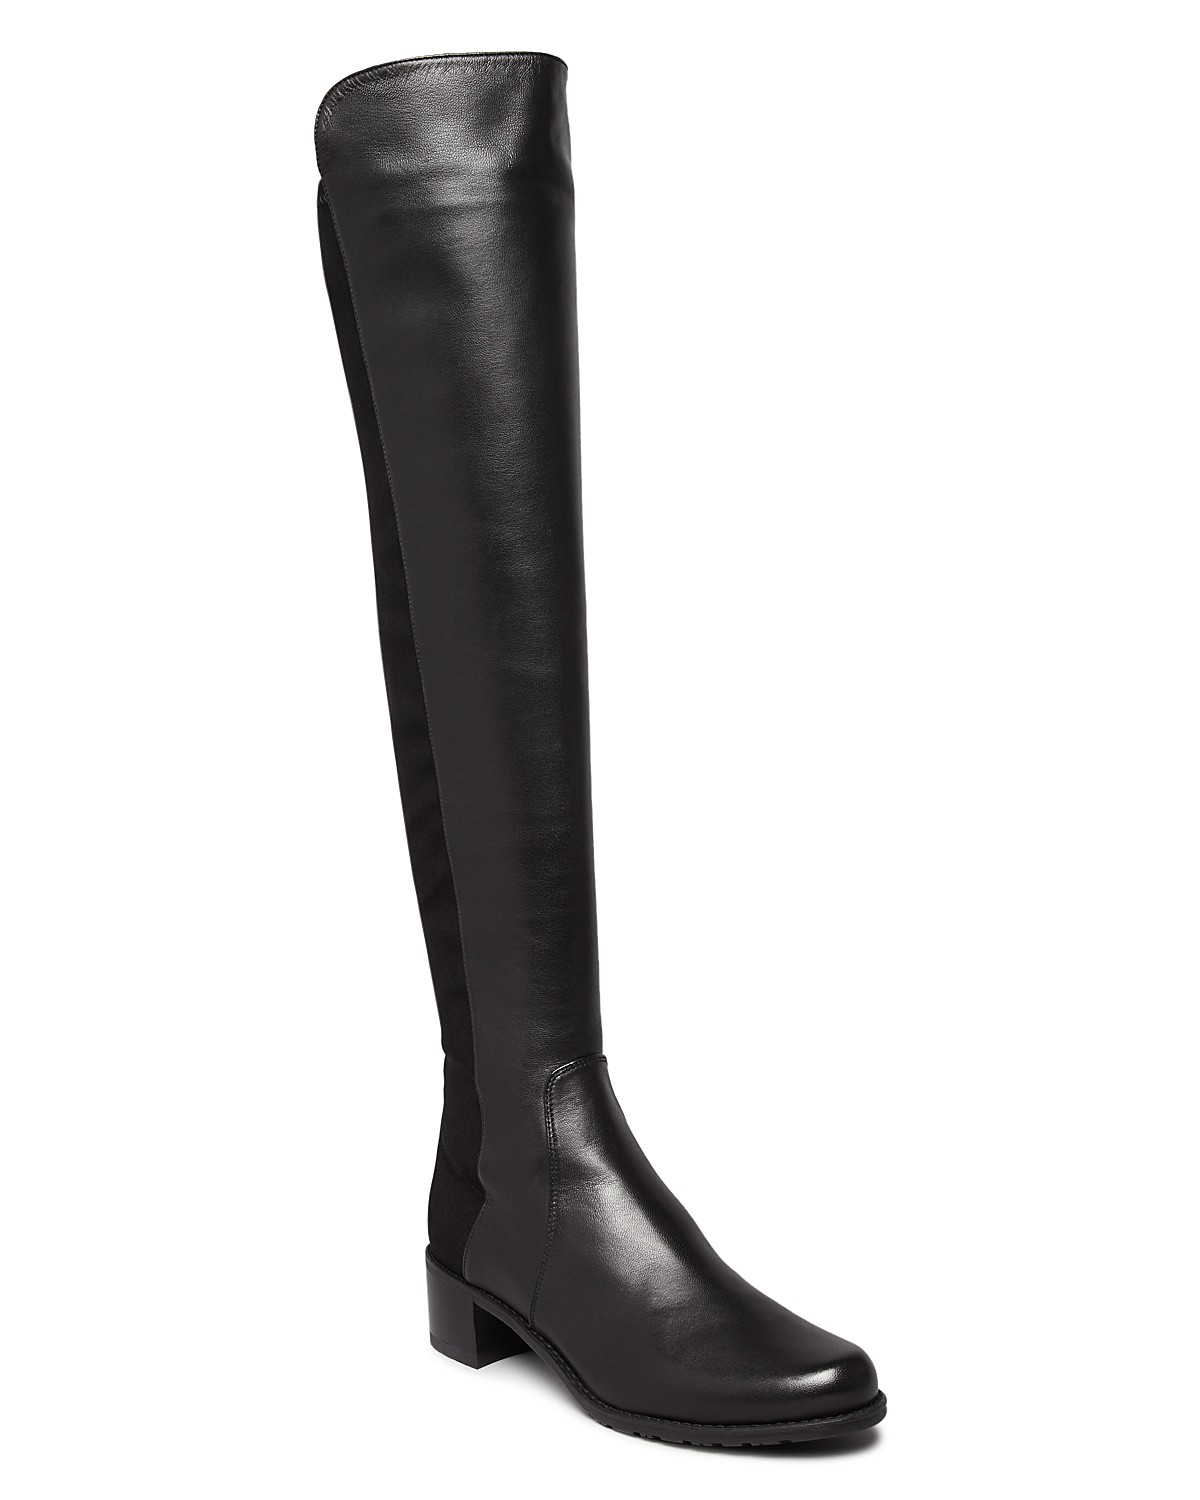 Stuart Weitzman Reserve Leather Over-the-Knee Boot (Women's) Qs93IIUTrJ